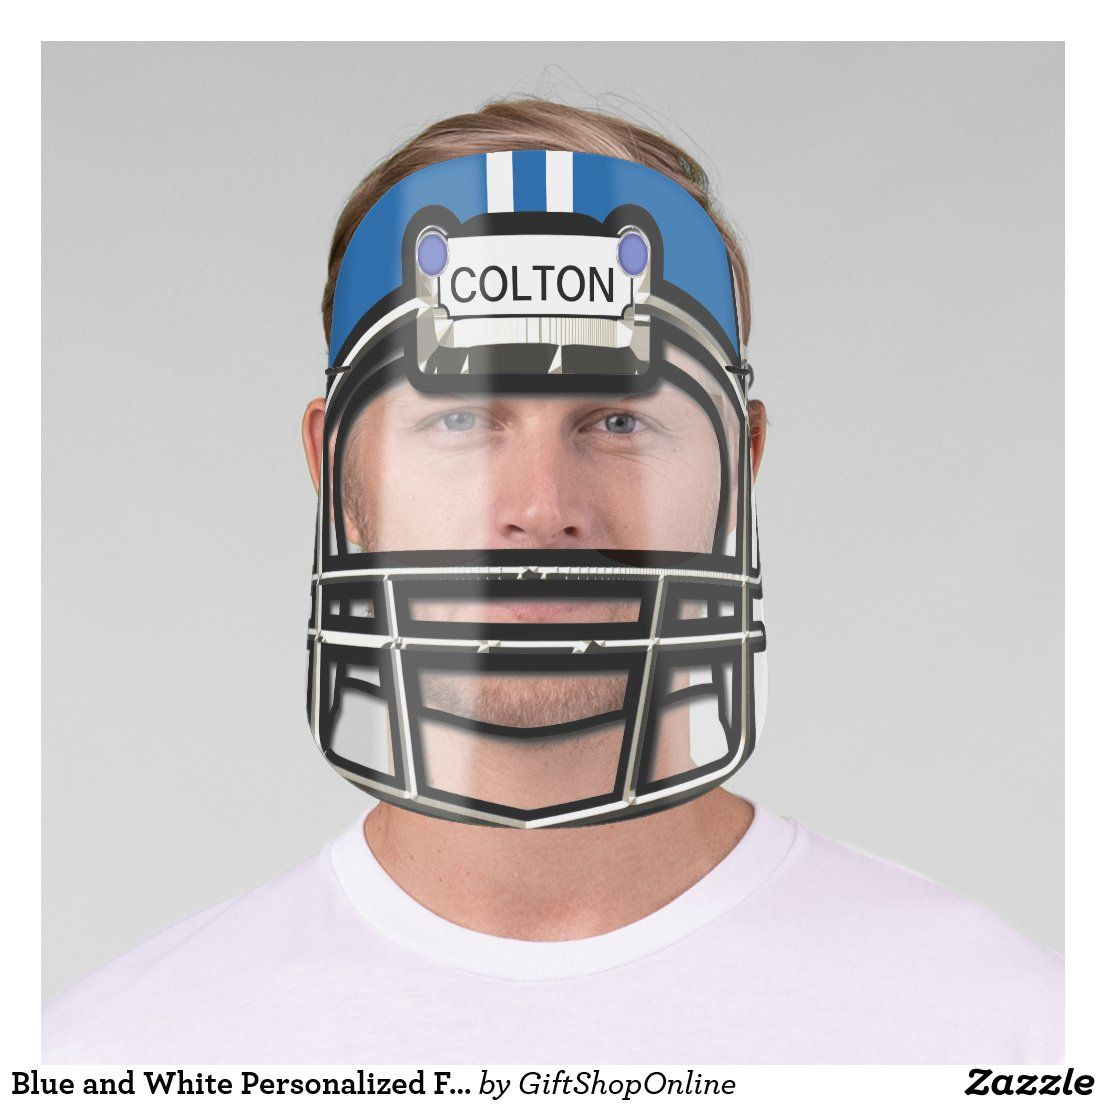 Blue and white personalized football helmet face shield